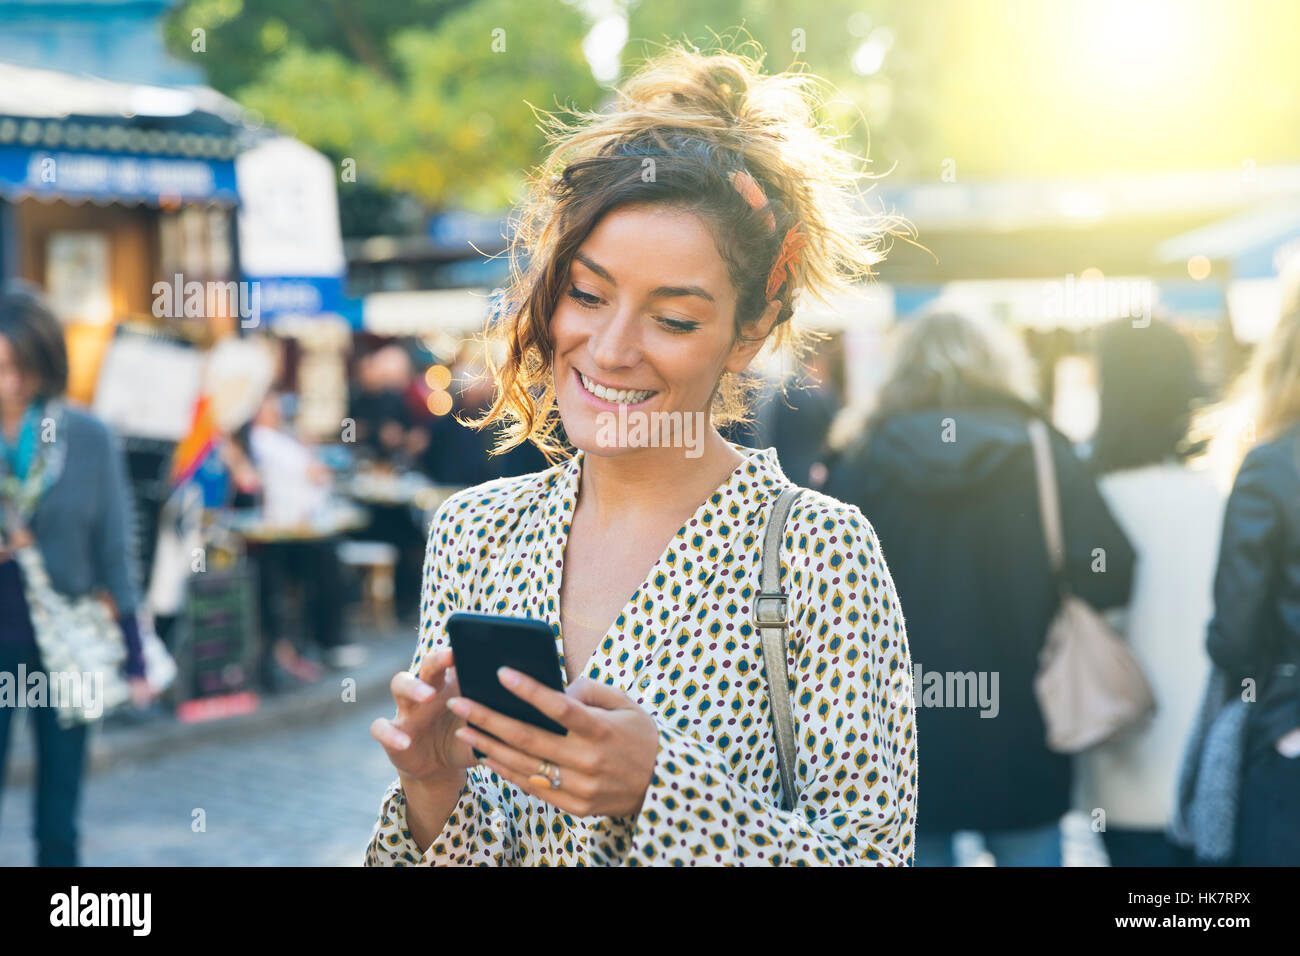 Paris, attractive woman visiting Montmartre district and using a smart phone - Stock Image